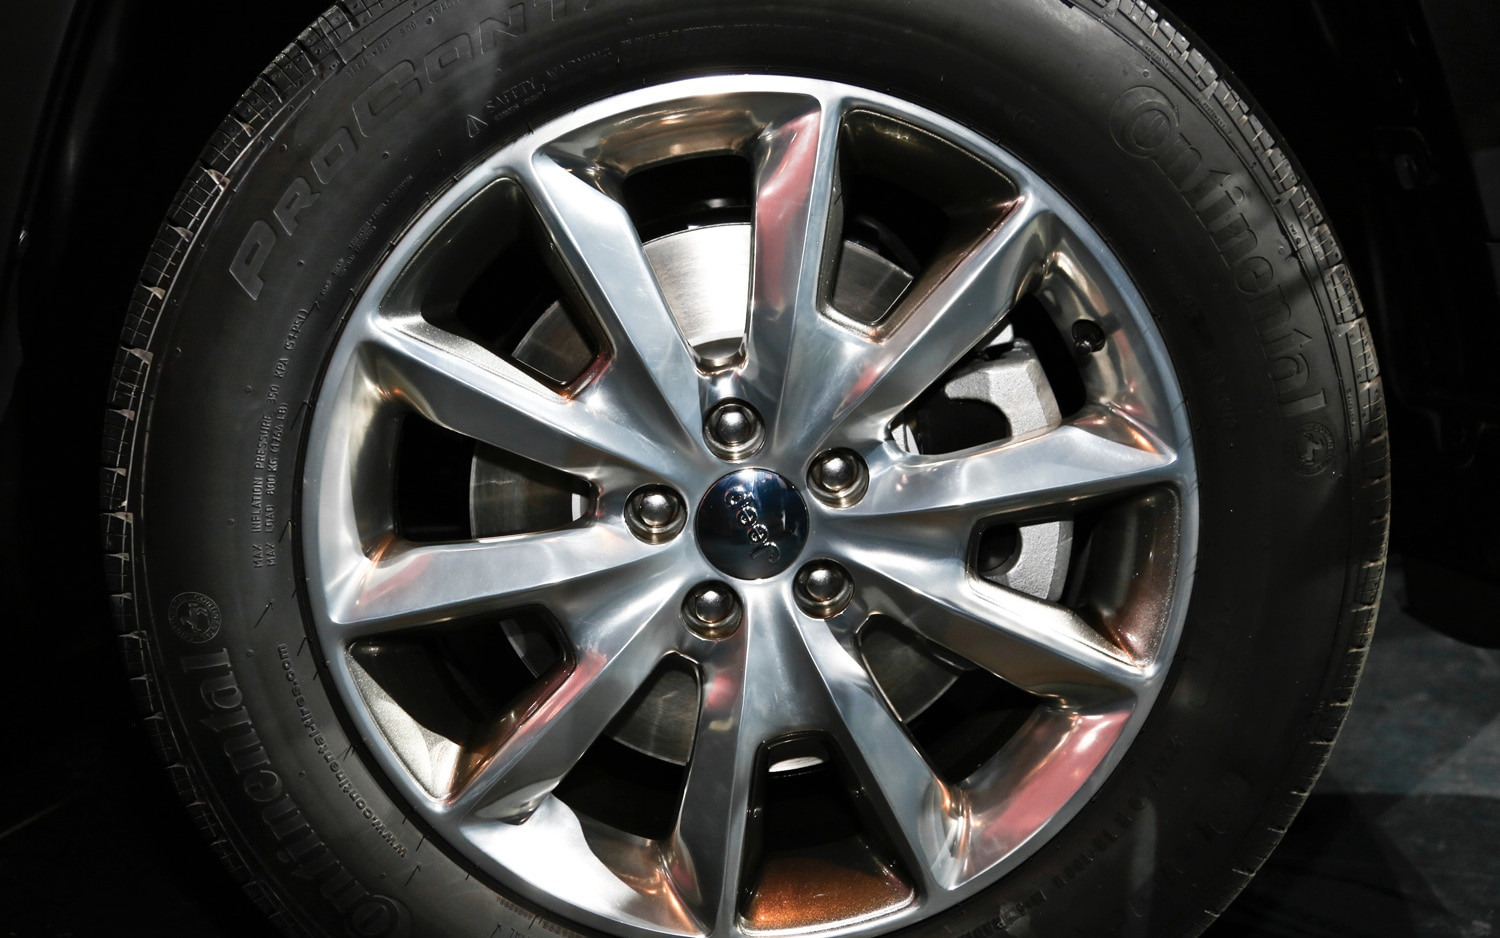 2014 Jeep Cherokee Limited wheels 21